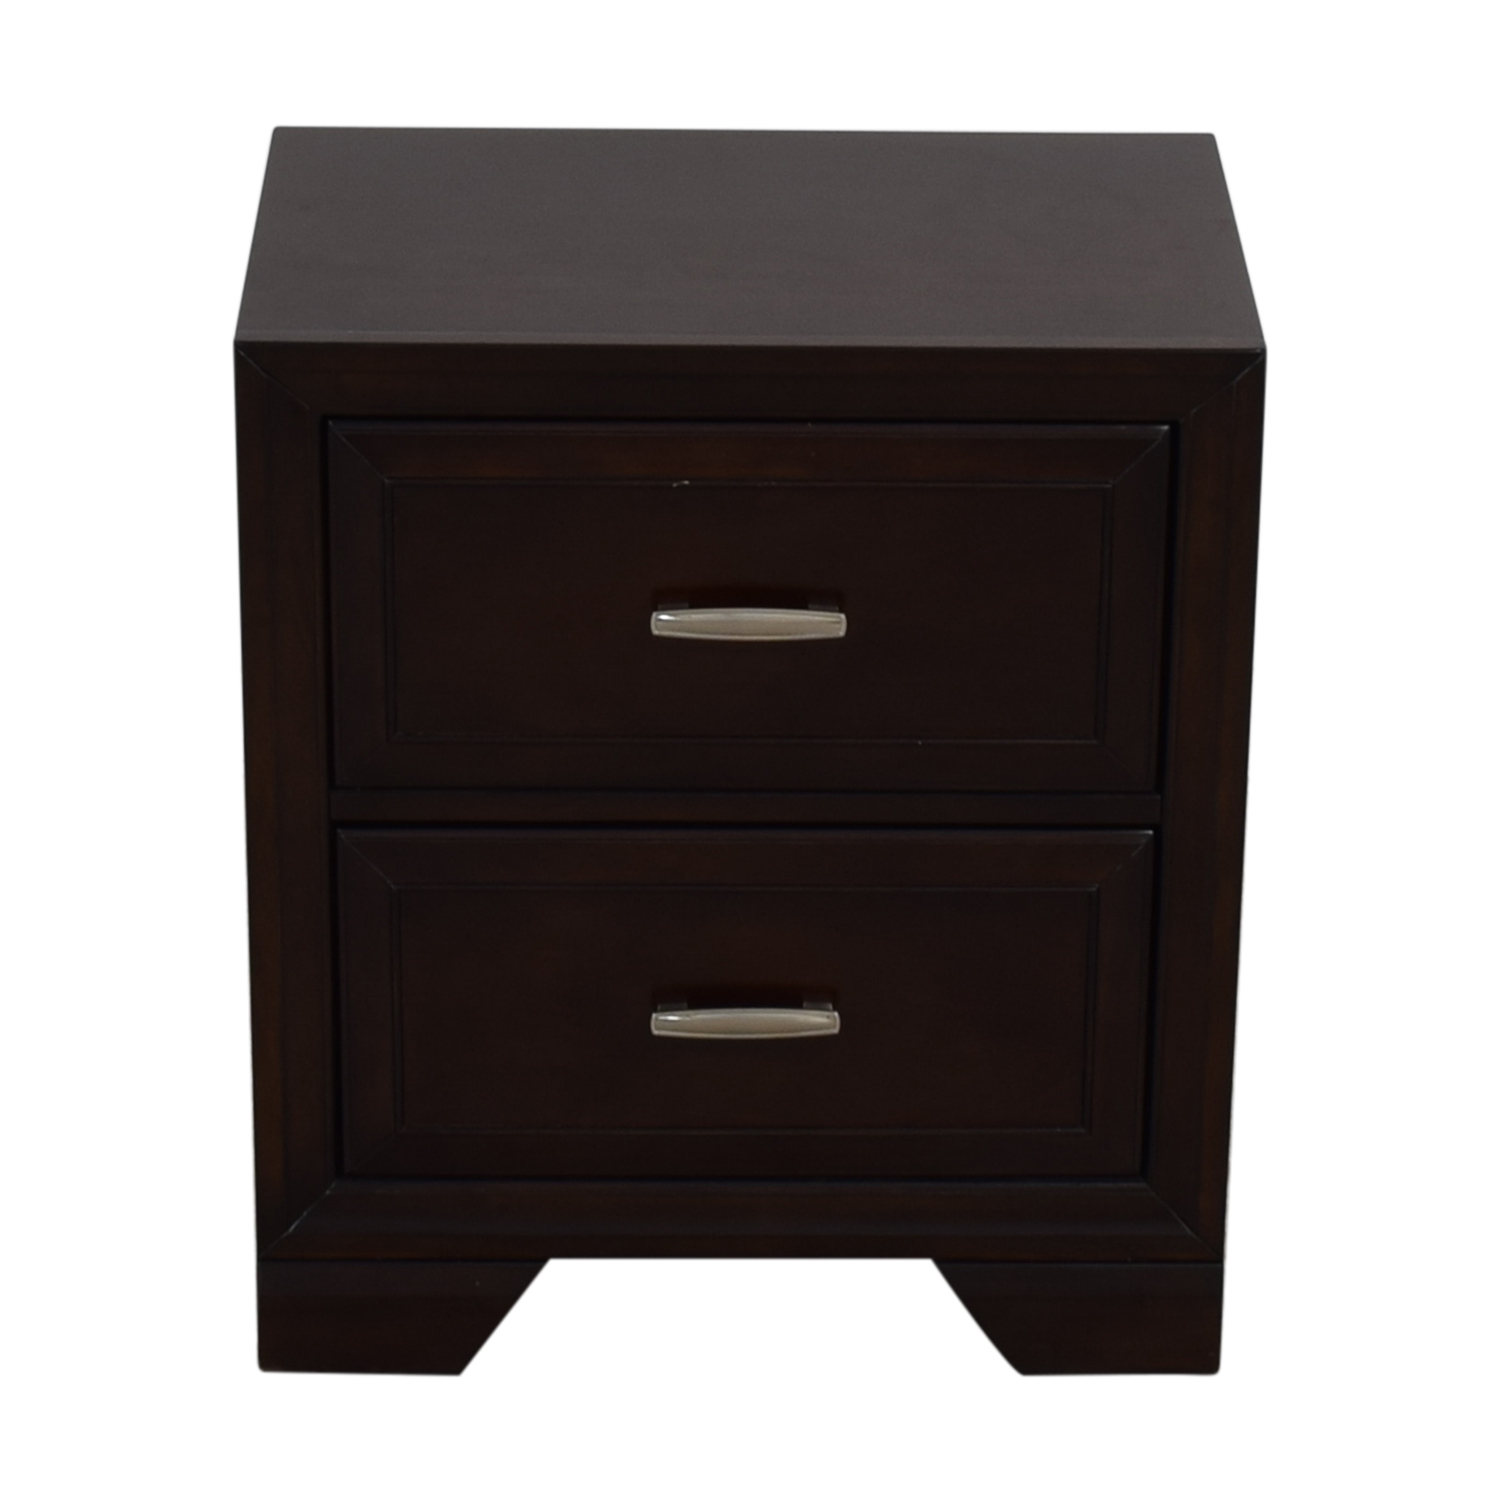 shop Raymour & Flanigan Raymour & Flanigan Wood Two-Drawer End Table online